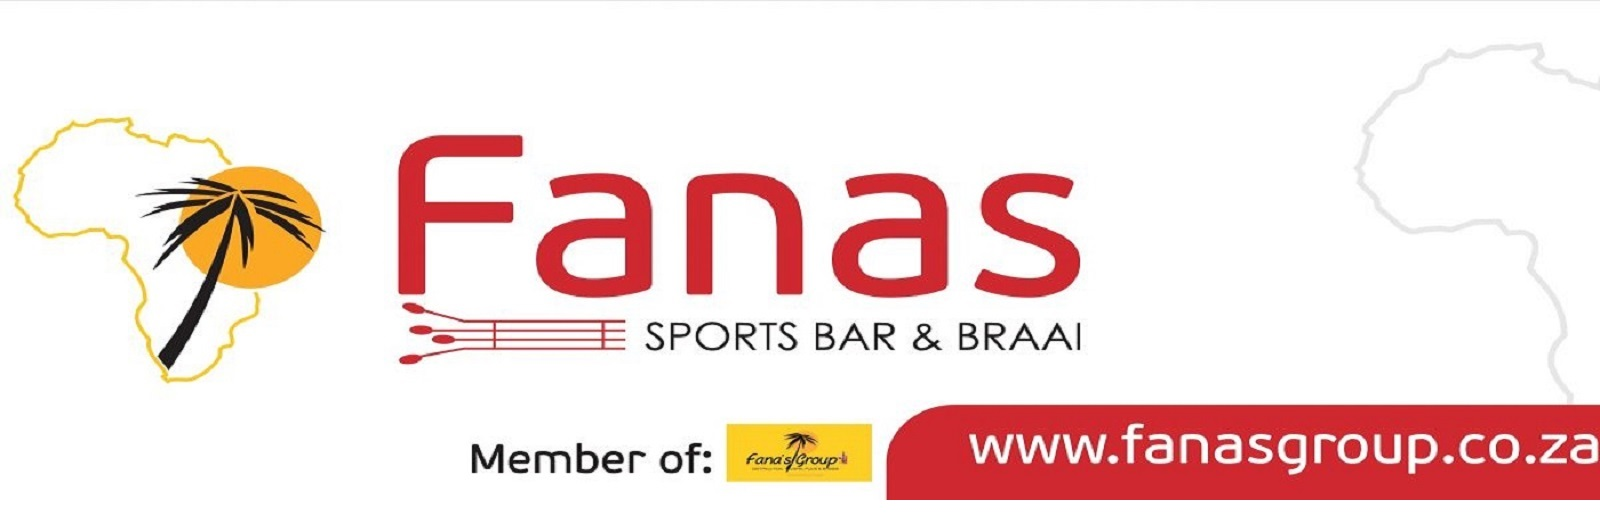 Sports-Bar-Braai-1200x440